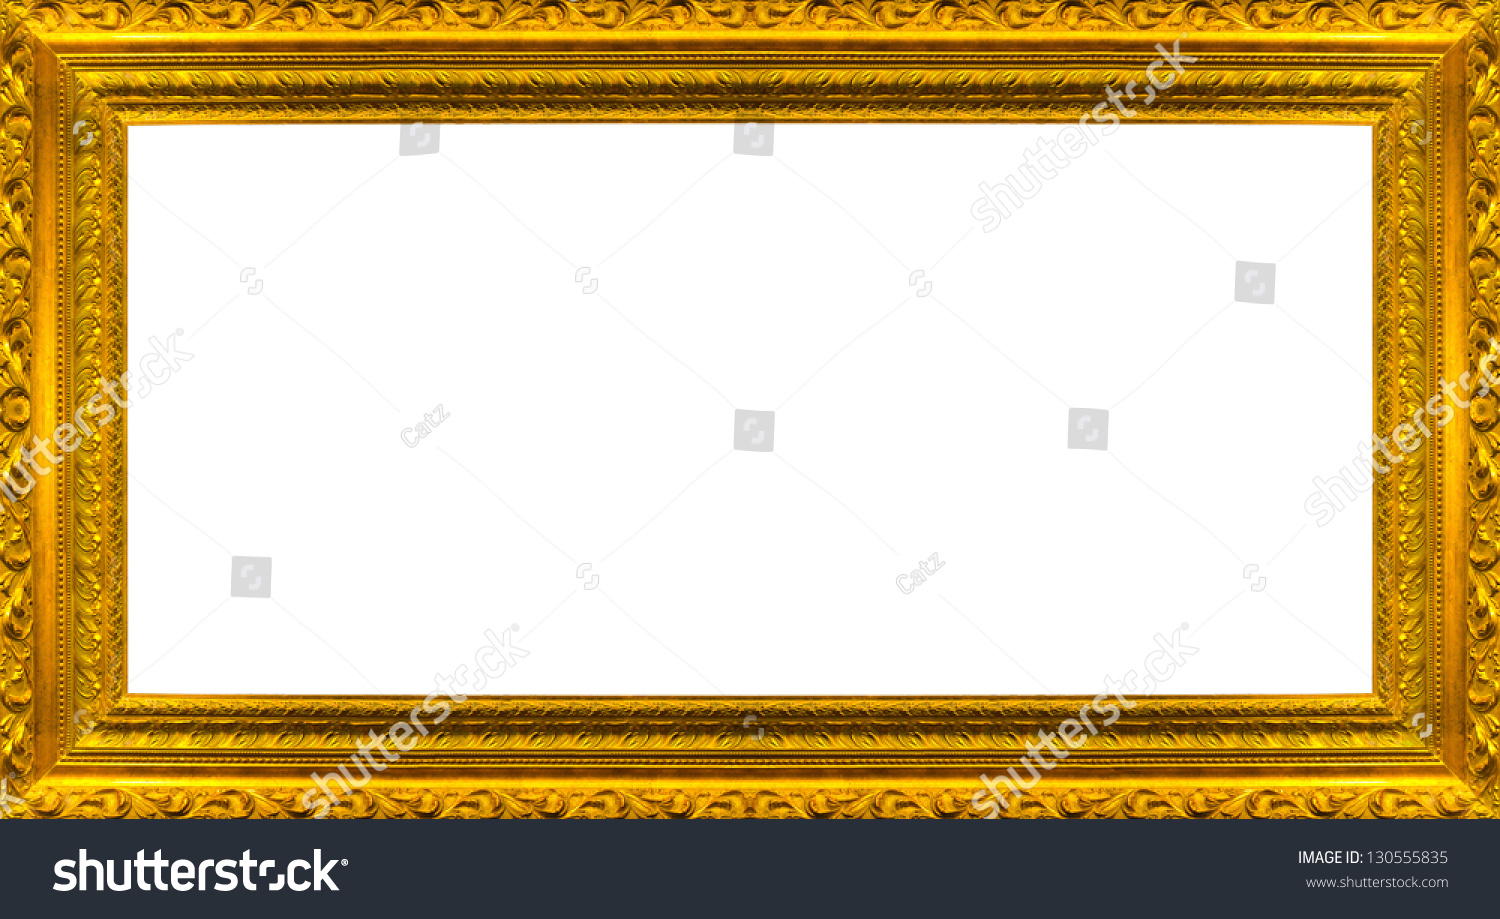 Very Big Size Large Golden Picture Stock Photo 130555835